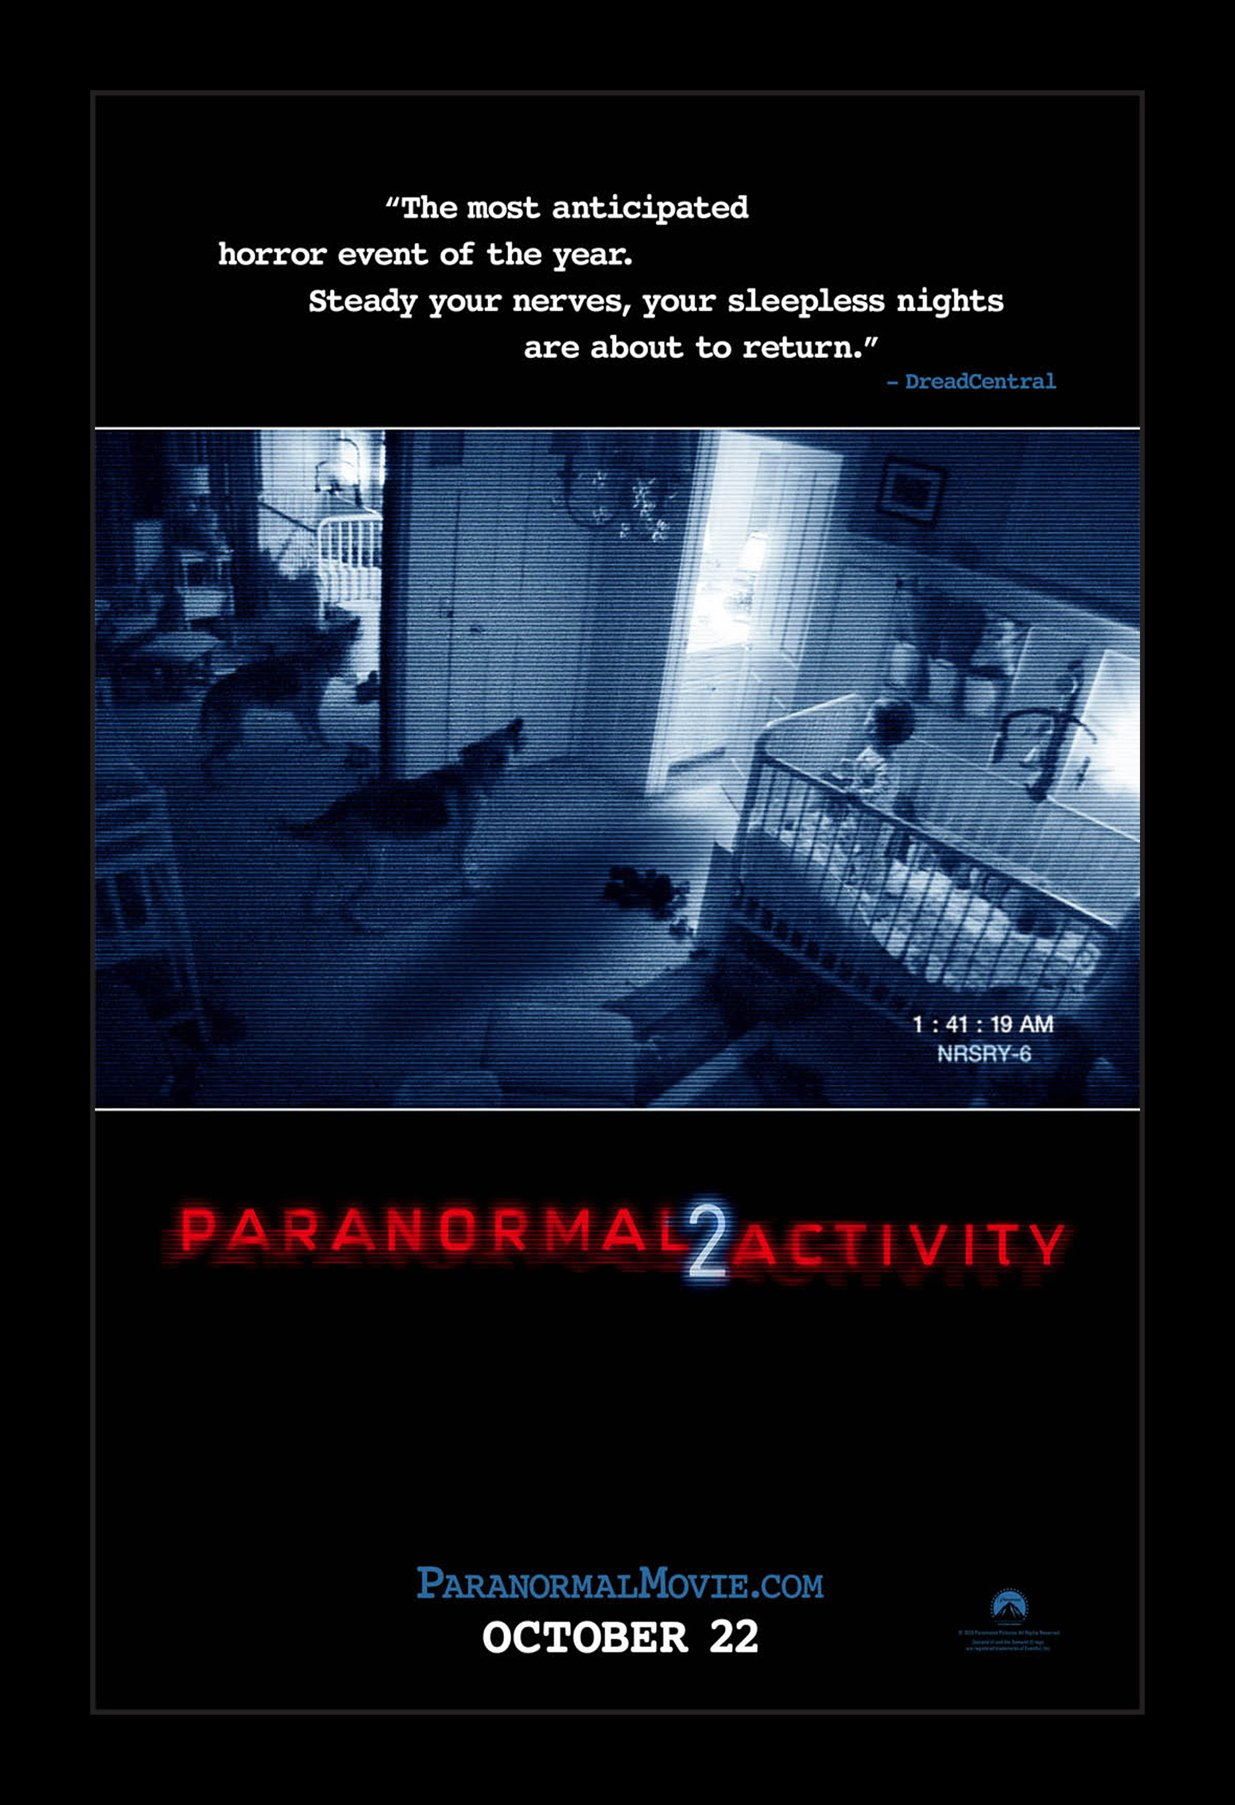 Paranormal Activity 2 - 11x17 Framed Movie Poster by Wallspace